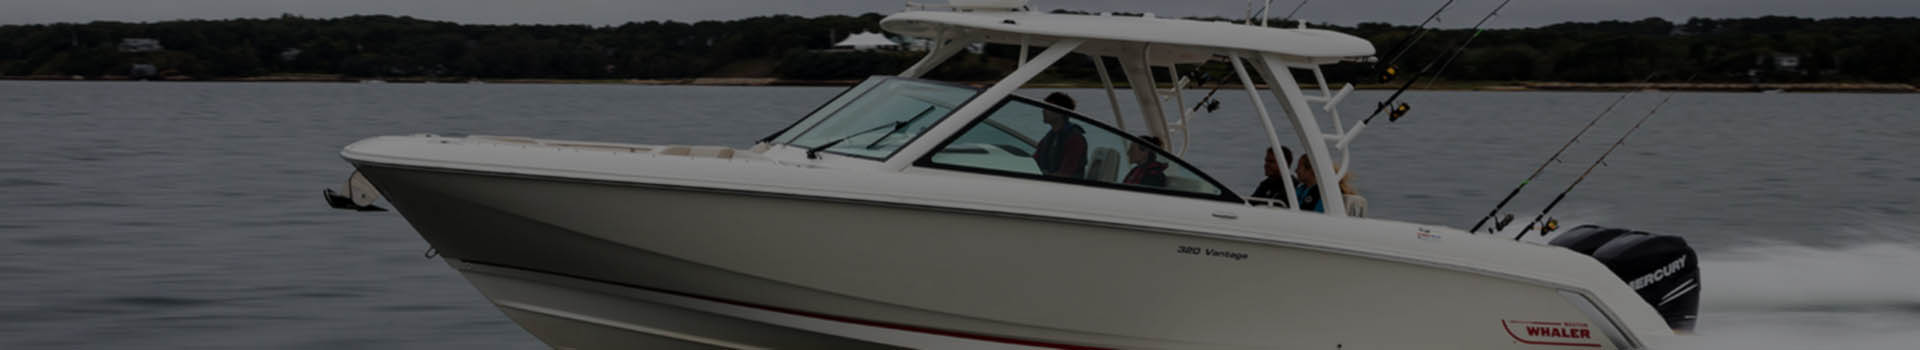 Irish Boat Shop | Boston Whaler